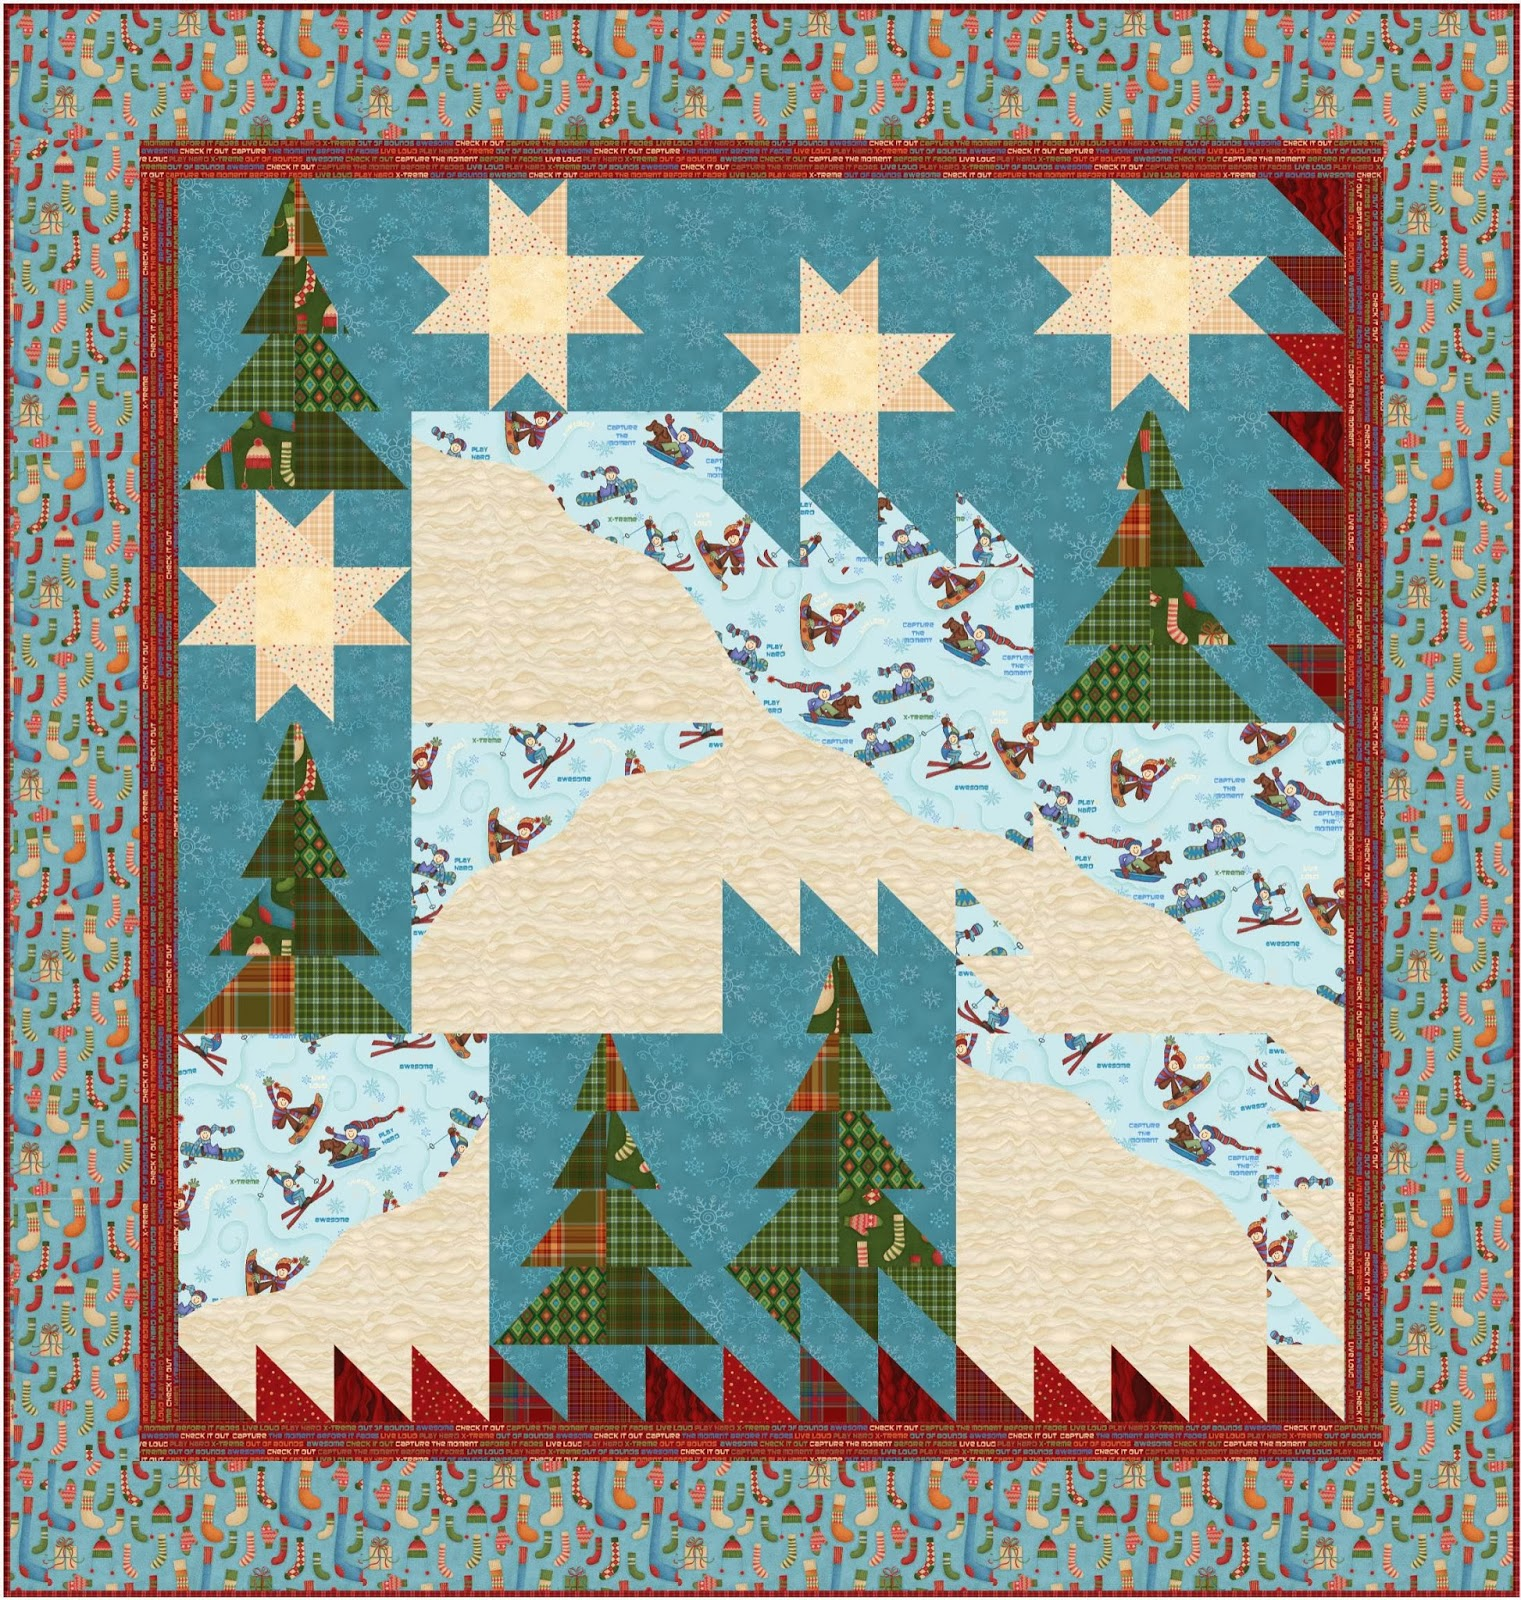 Free pattern day: Christmas 2015 (part 1) | Quilt Inspiration ... : oh henry quilt pattern - Adamdwight.com